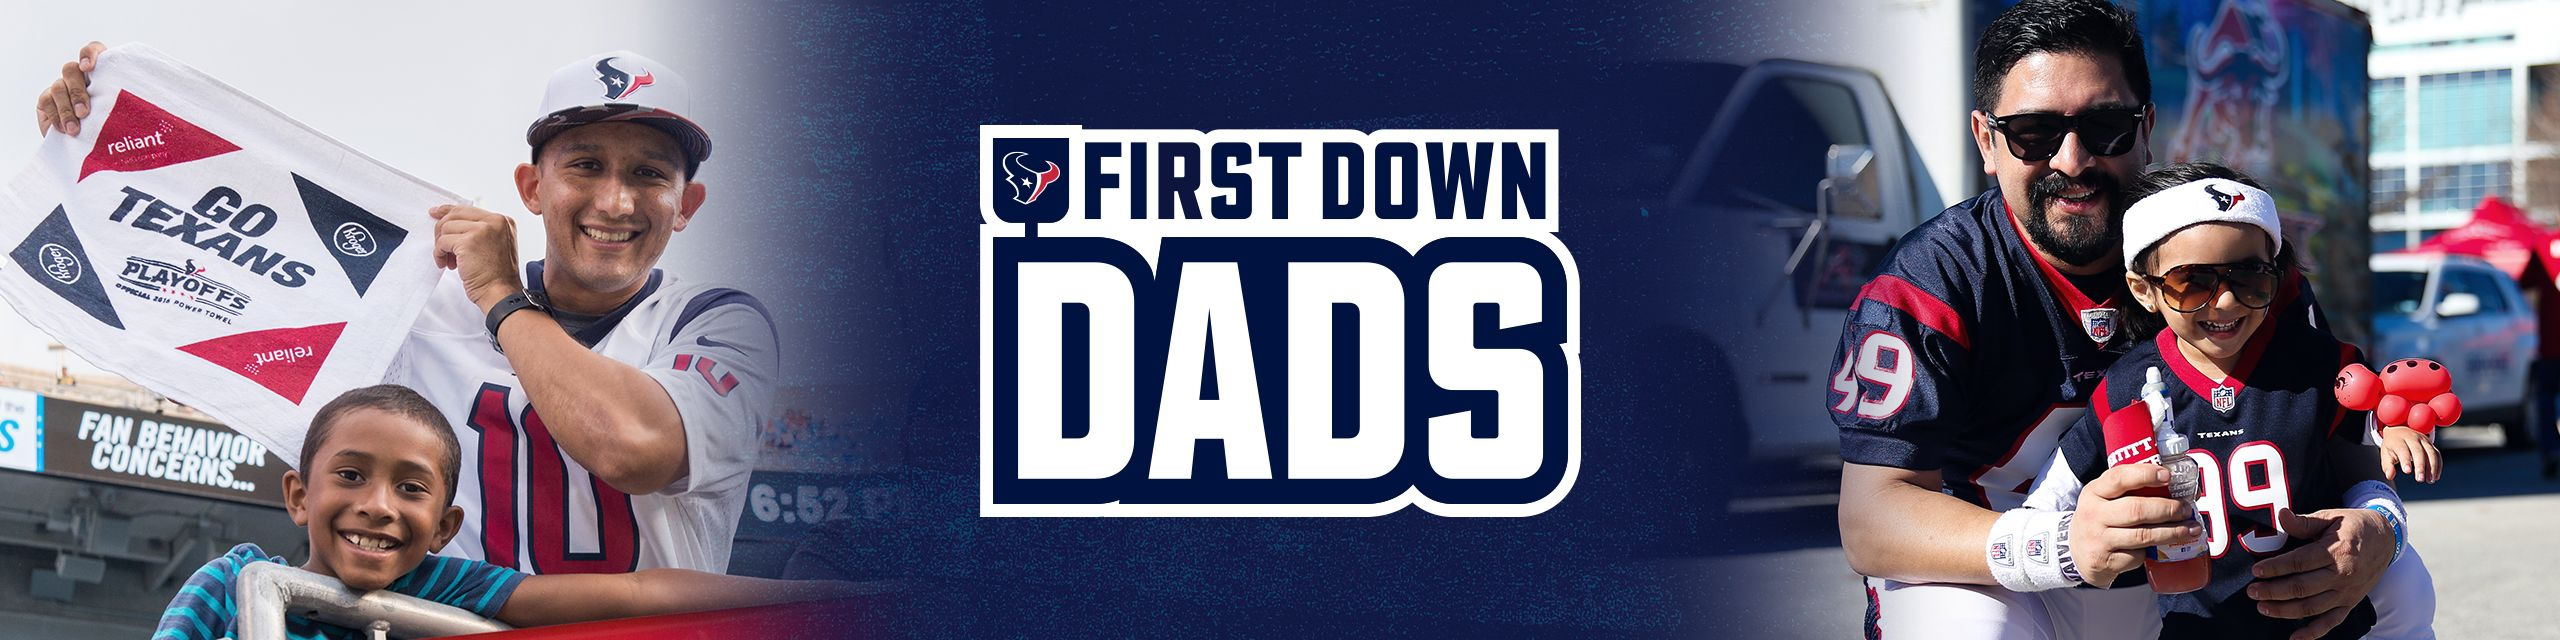 First Down Dads